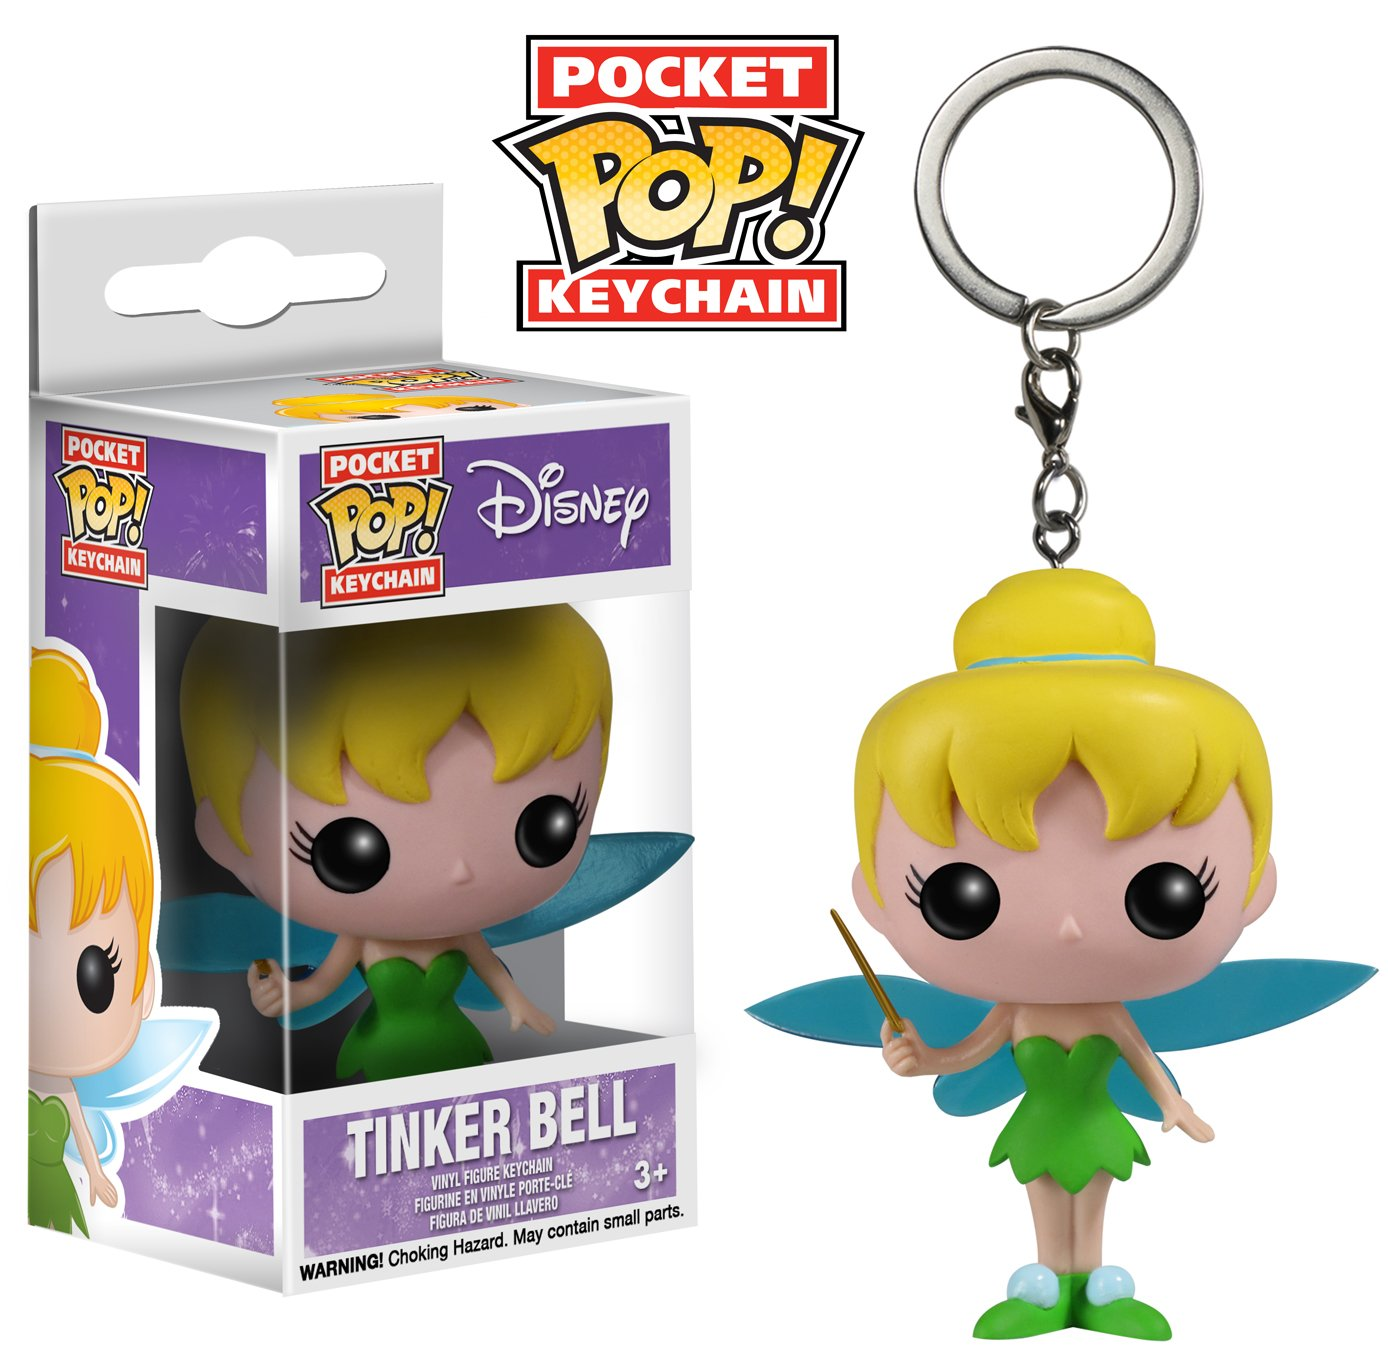 Pocket POP! Keychain - Disney: Tinker Bell